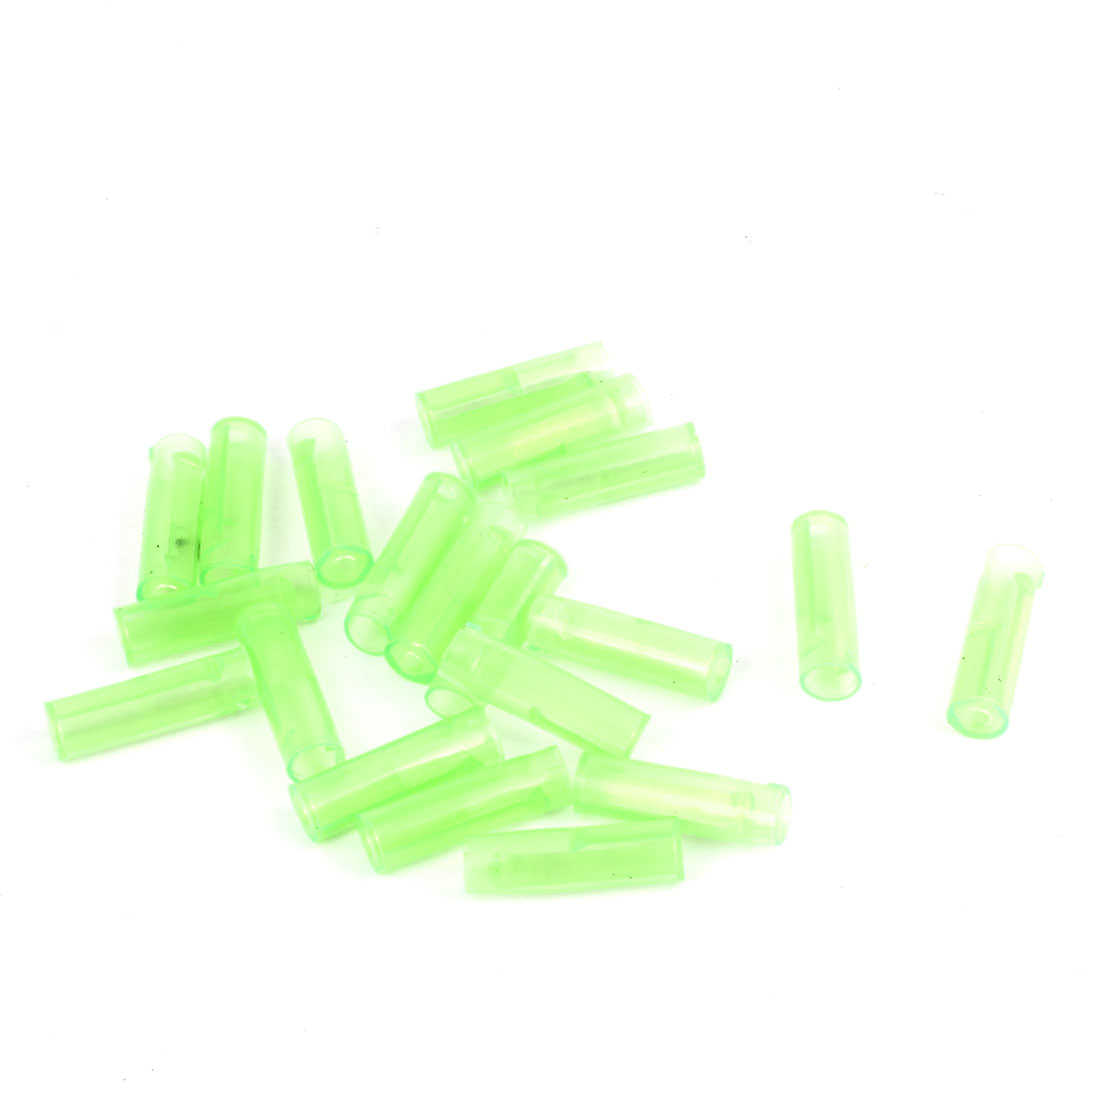 20 Pcs Green 6mm Dia 23mm Long PVC Crimp Terminal Cover Sleeves for Motorcycle